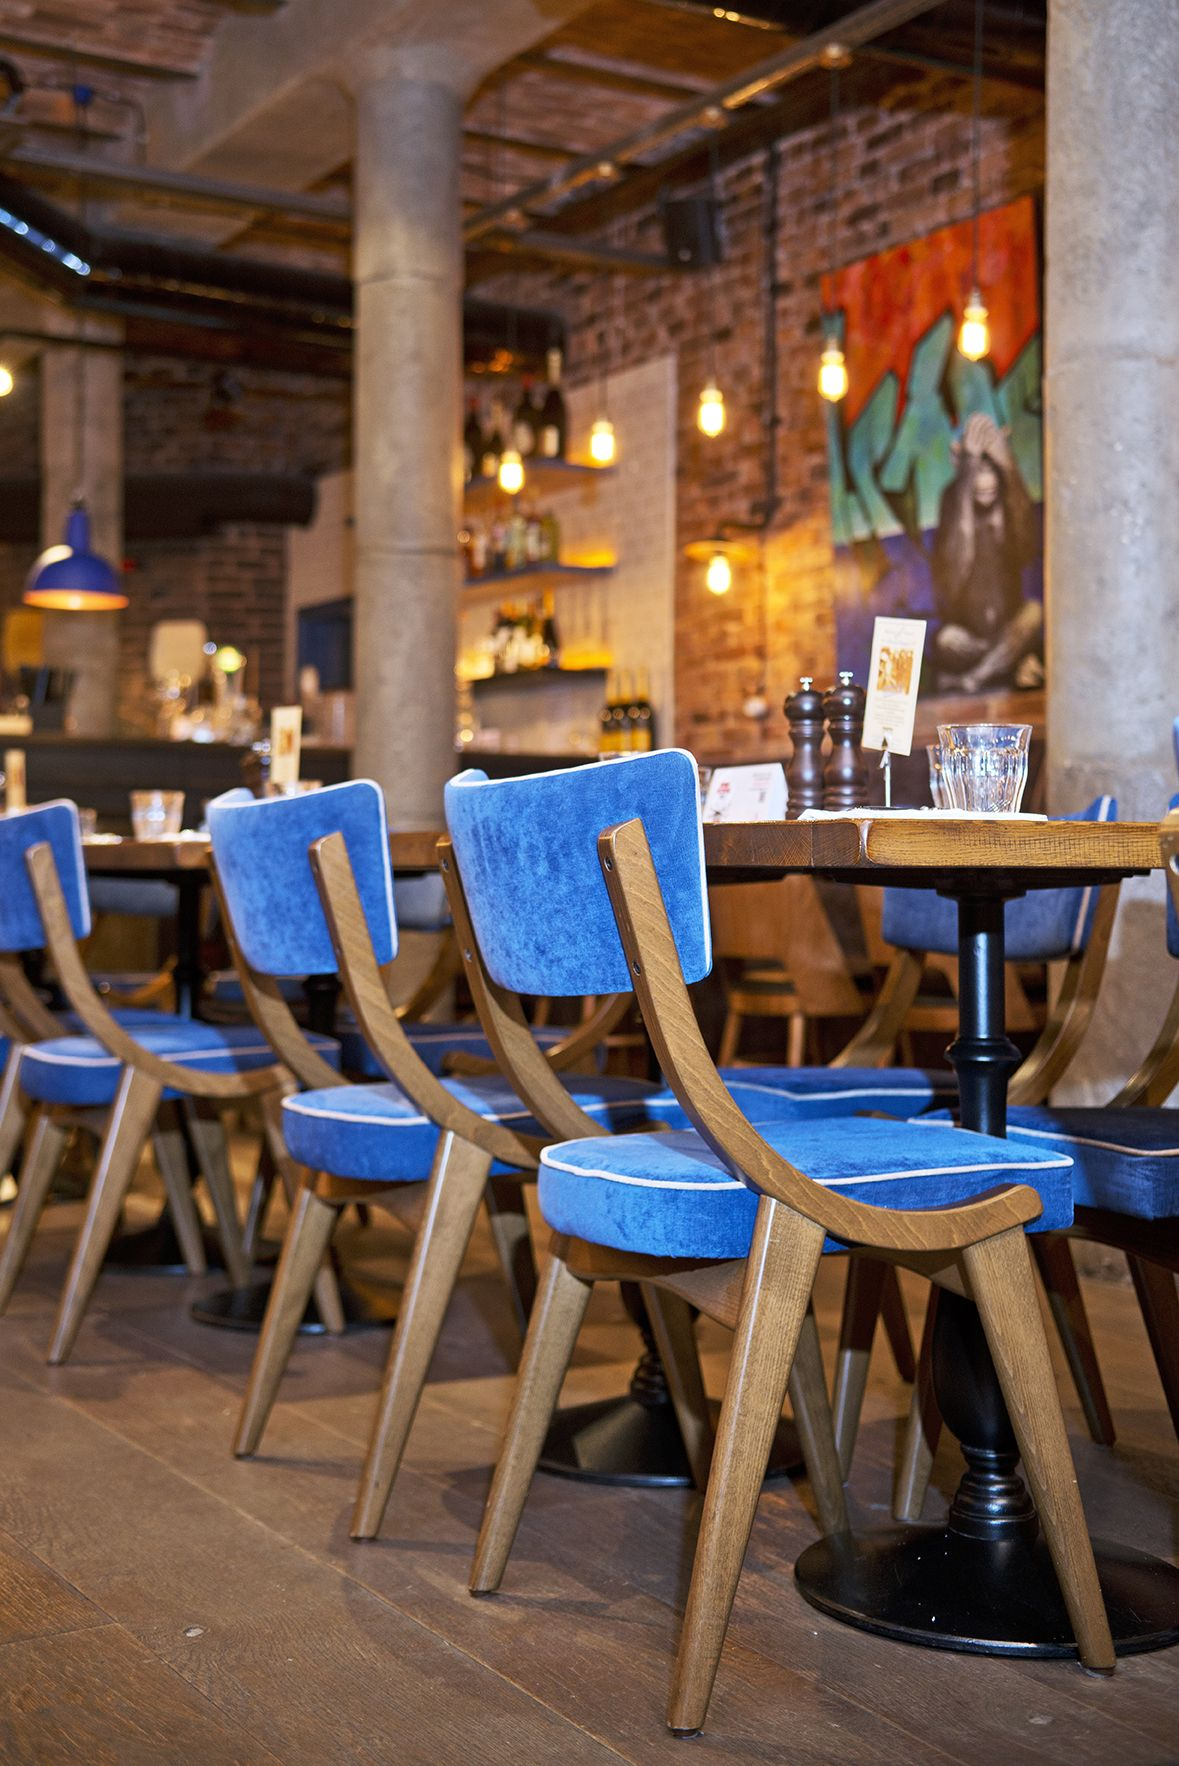 Merveilleux Blue Suede Chairs. More